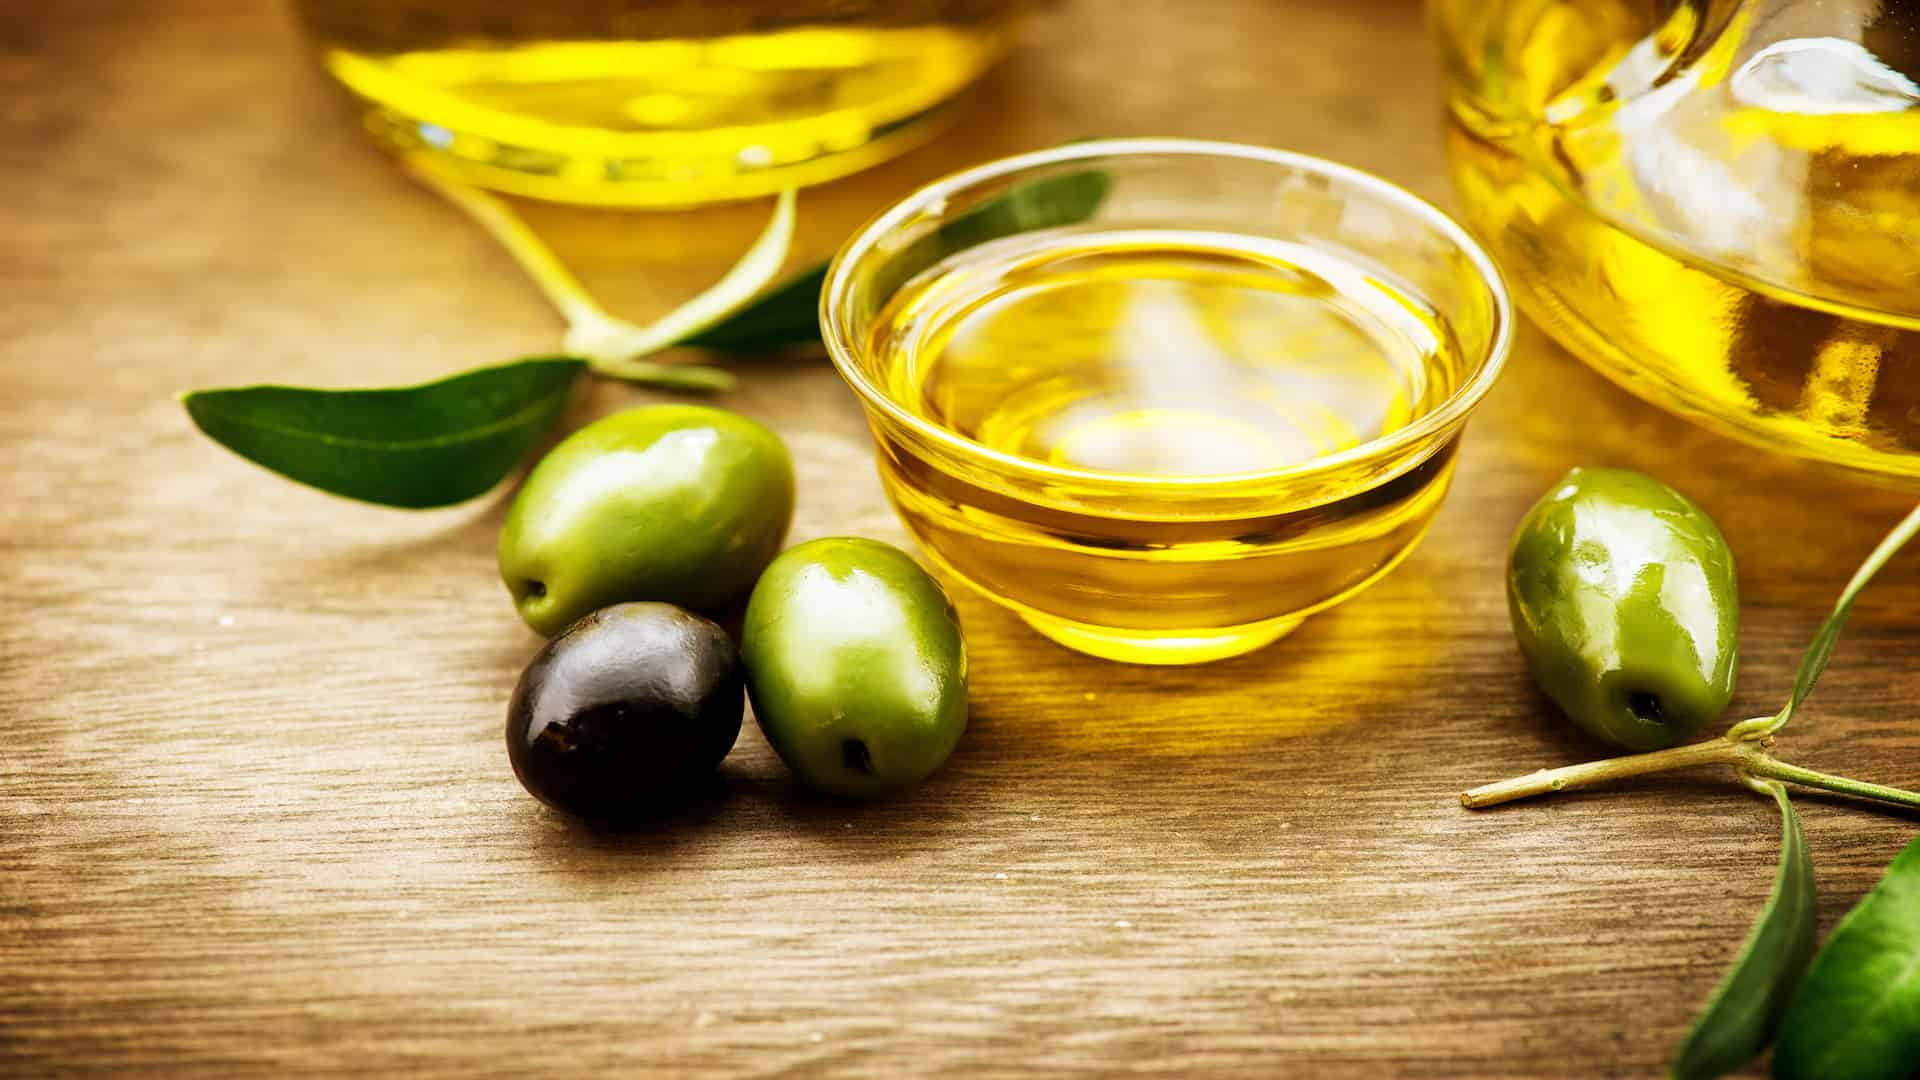 Best Olive Oil 2020: Shopping Guide & Review